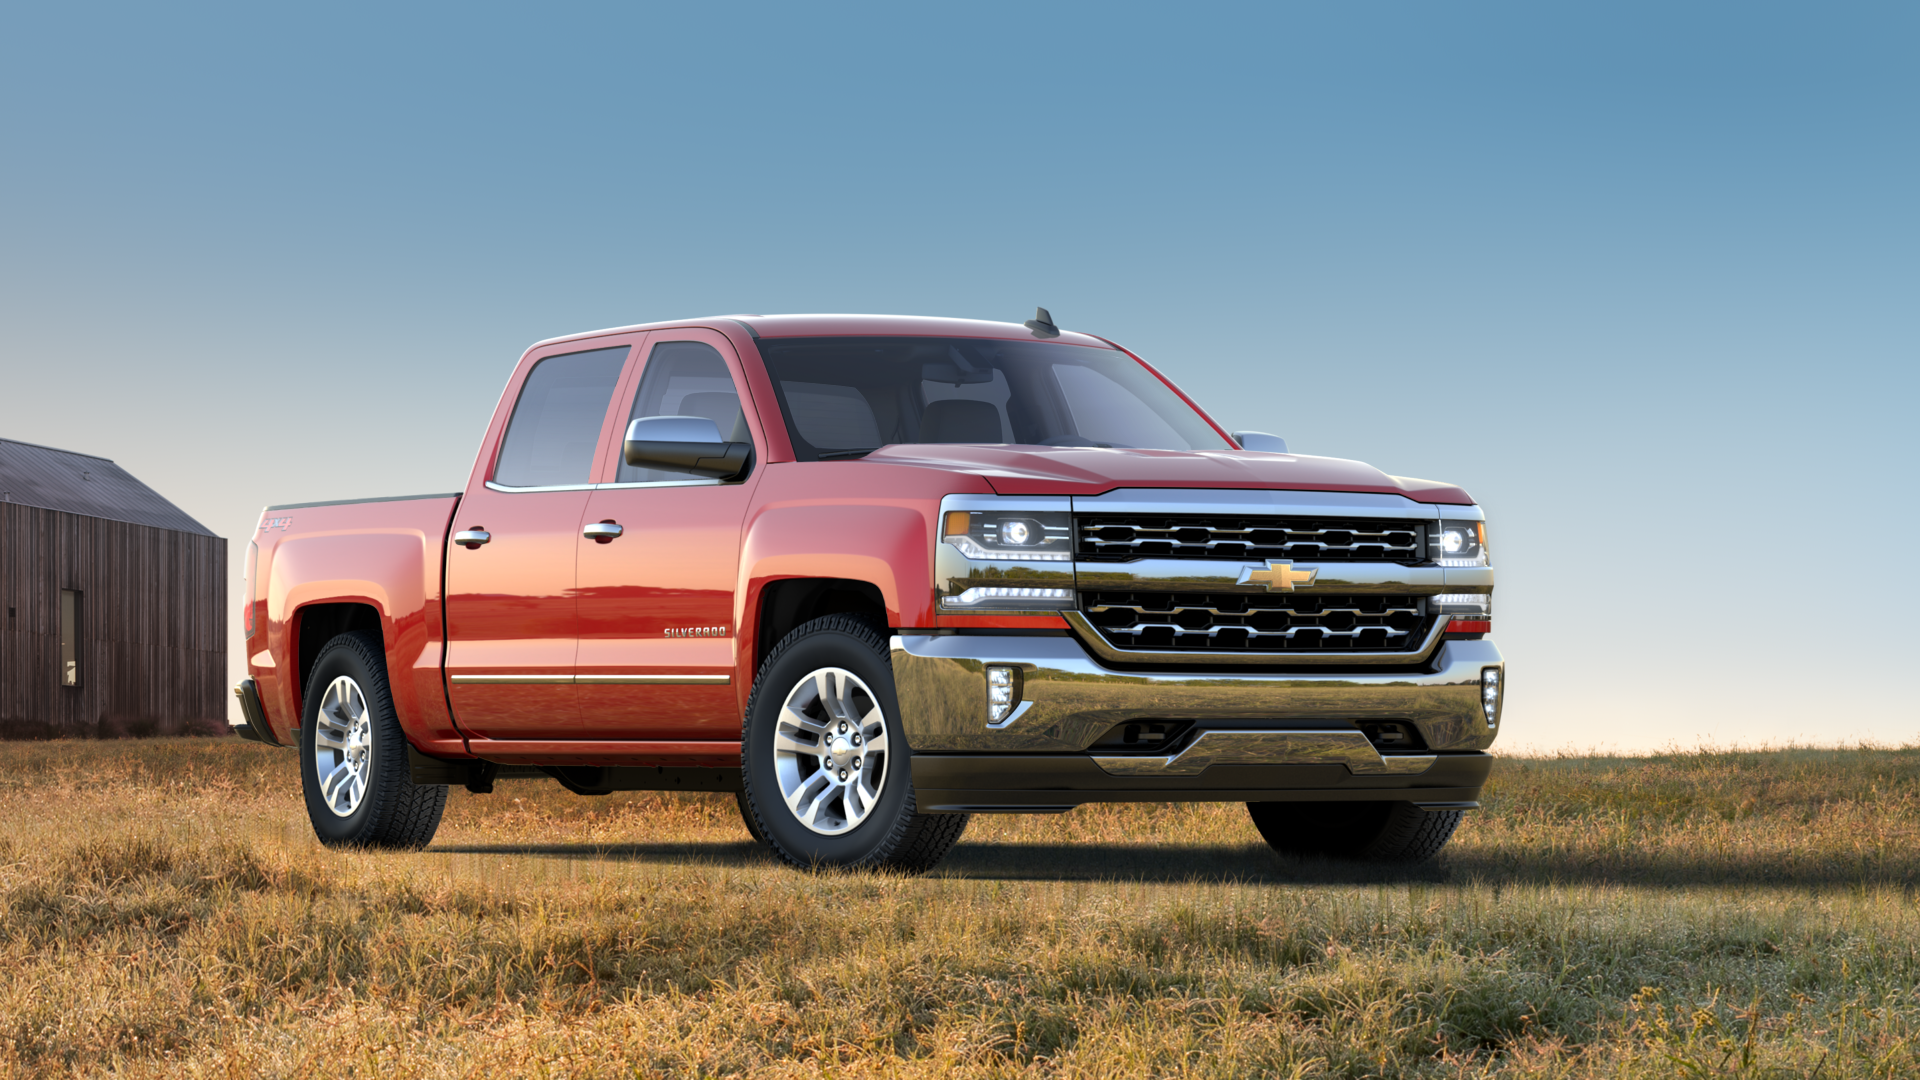 Used Chevrolet Silverado 1500 Trucks For Sale In Duluth Ga